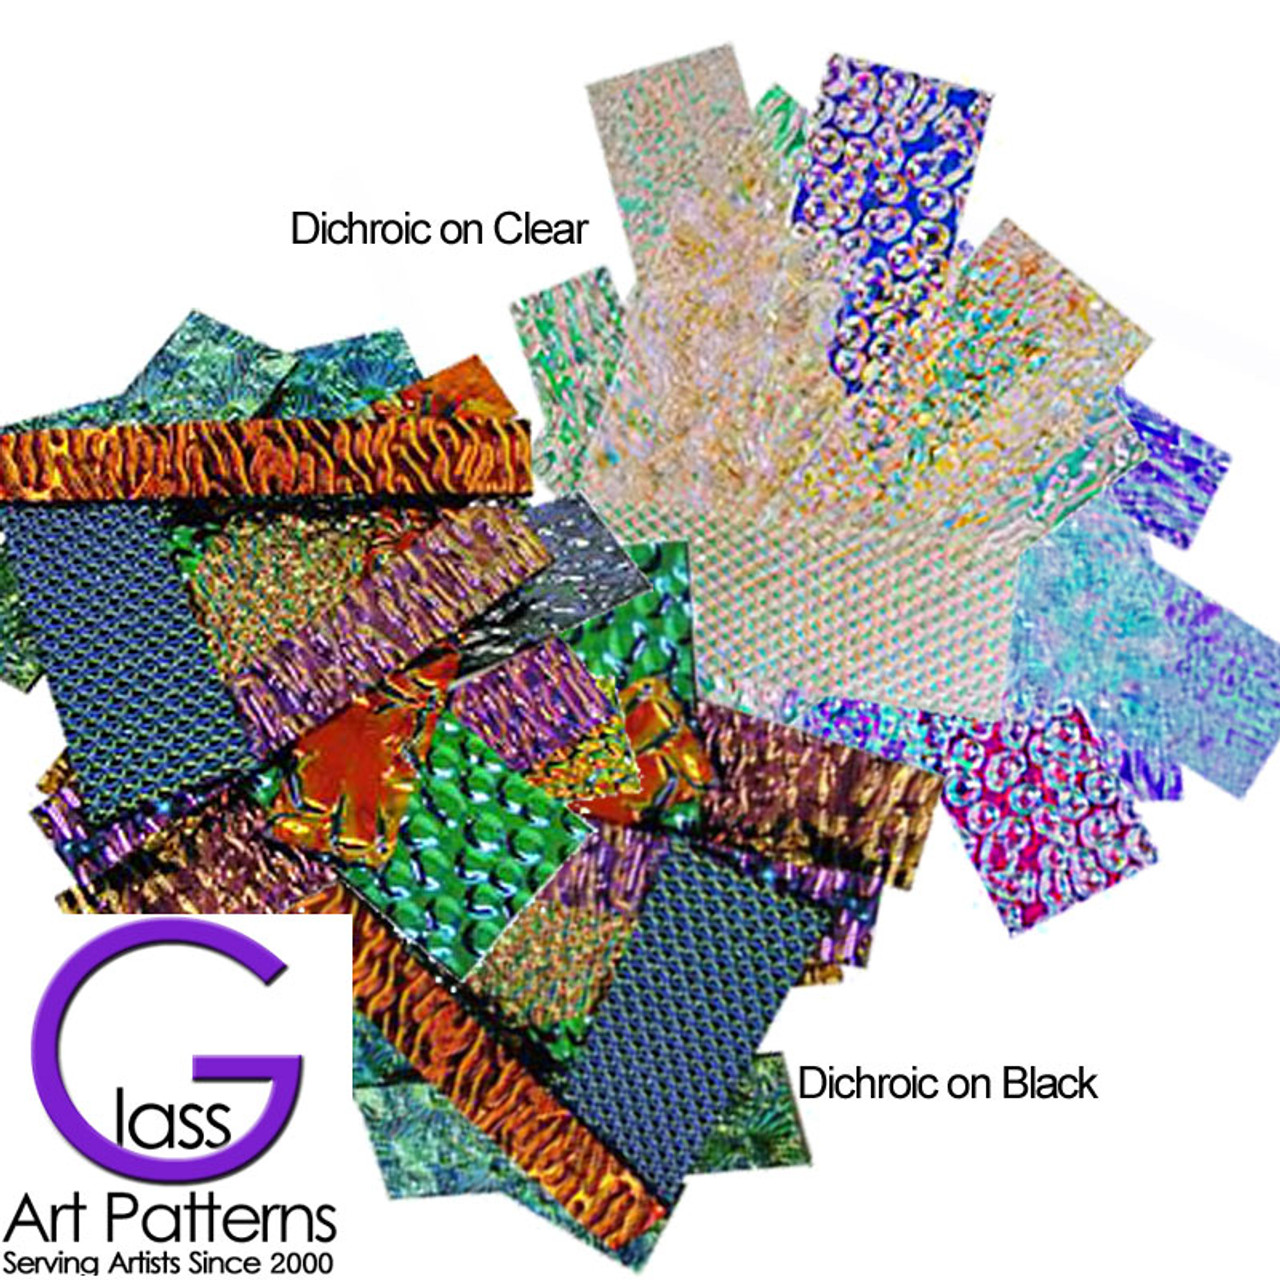 96coe DICHROIC FRIT-COARS Free Shipping Fused Glass Supplies